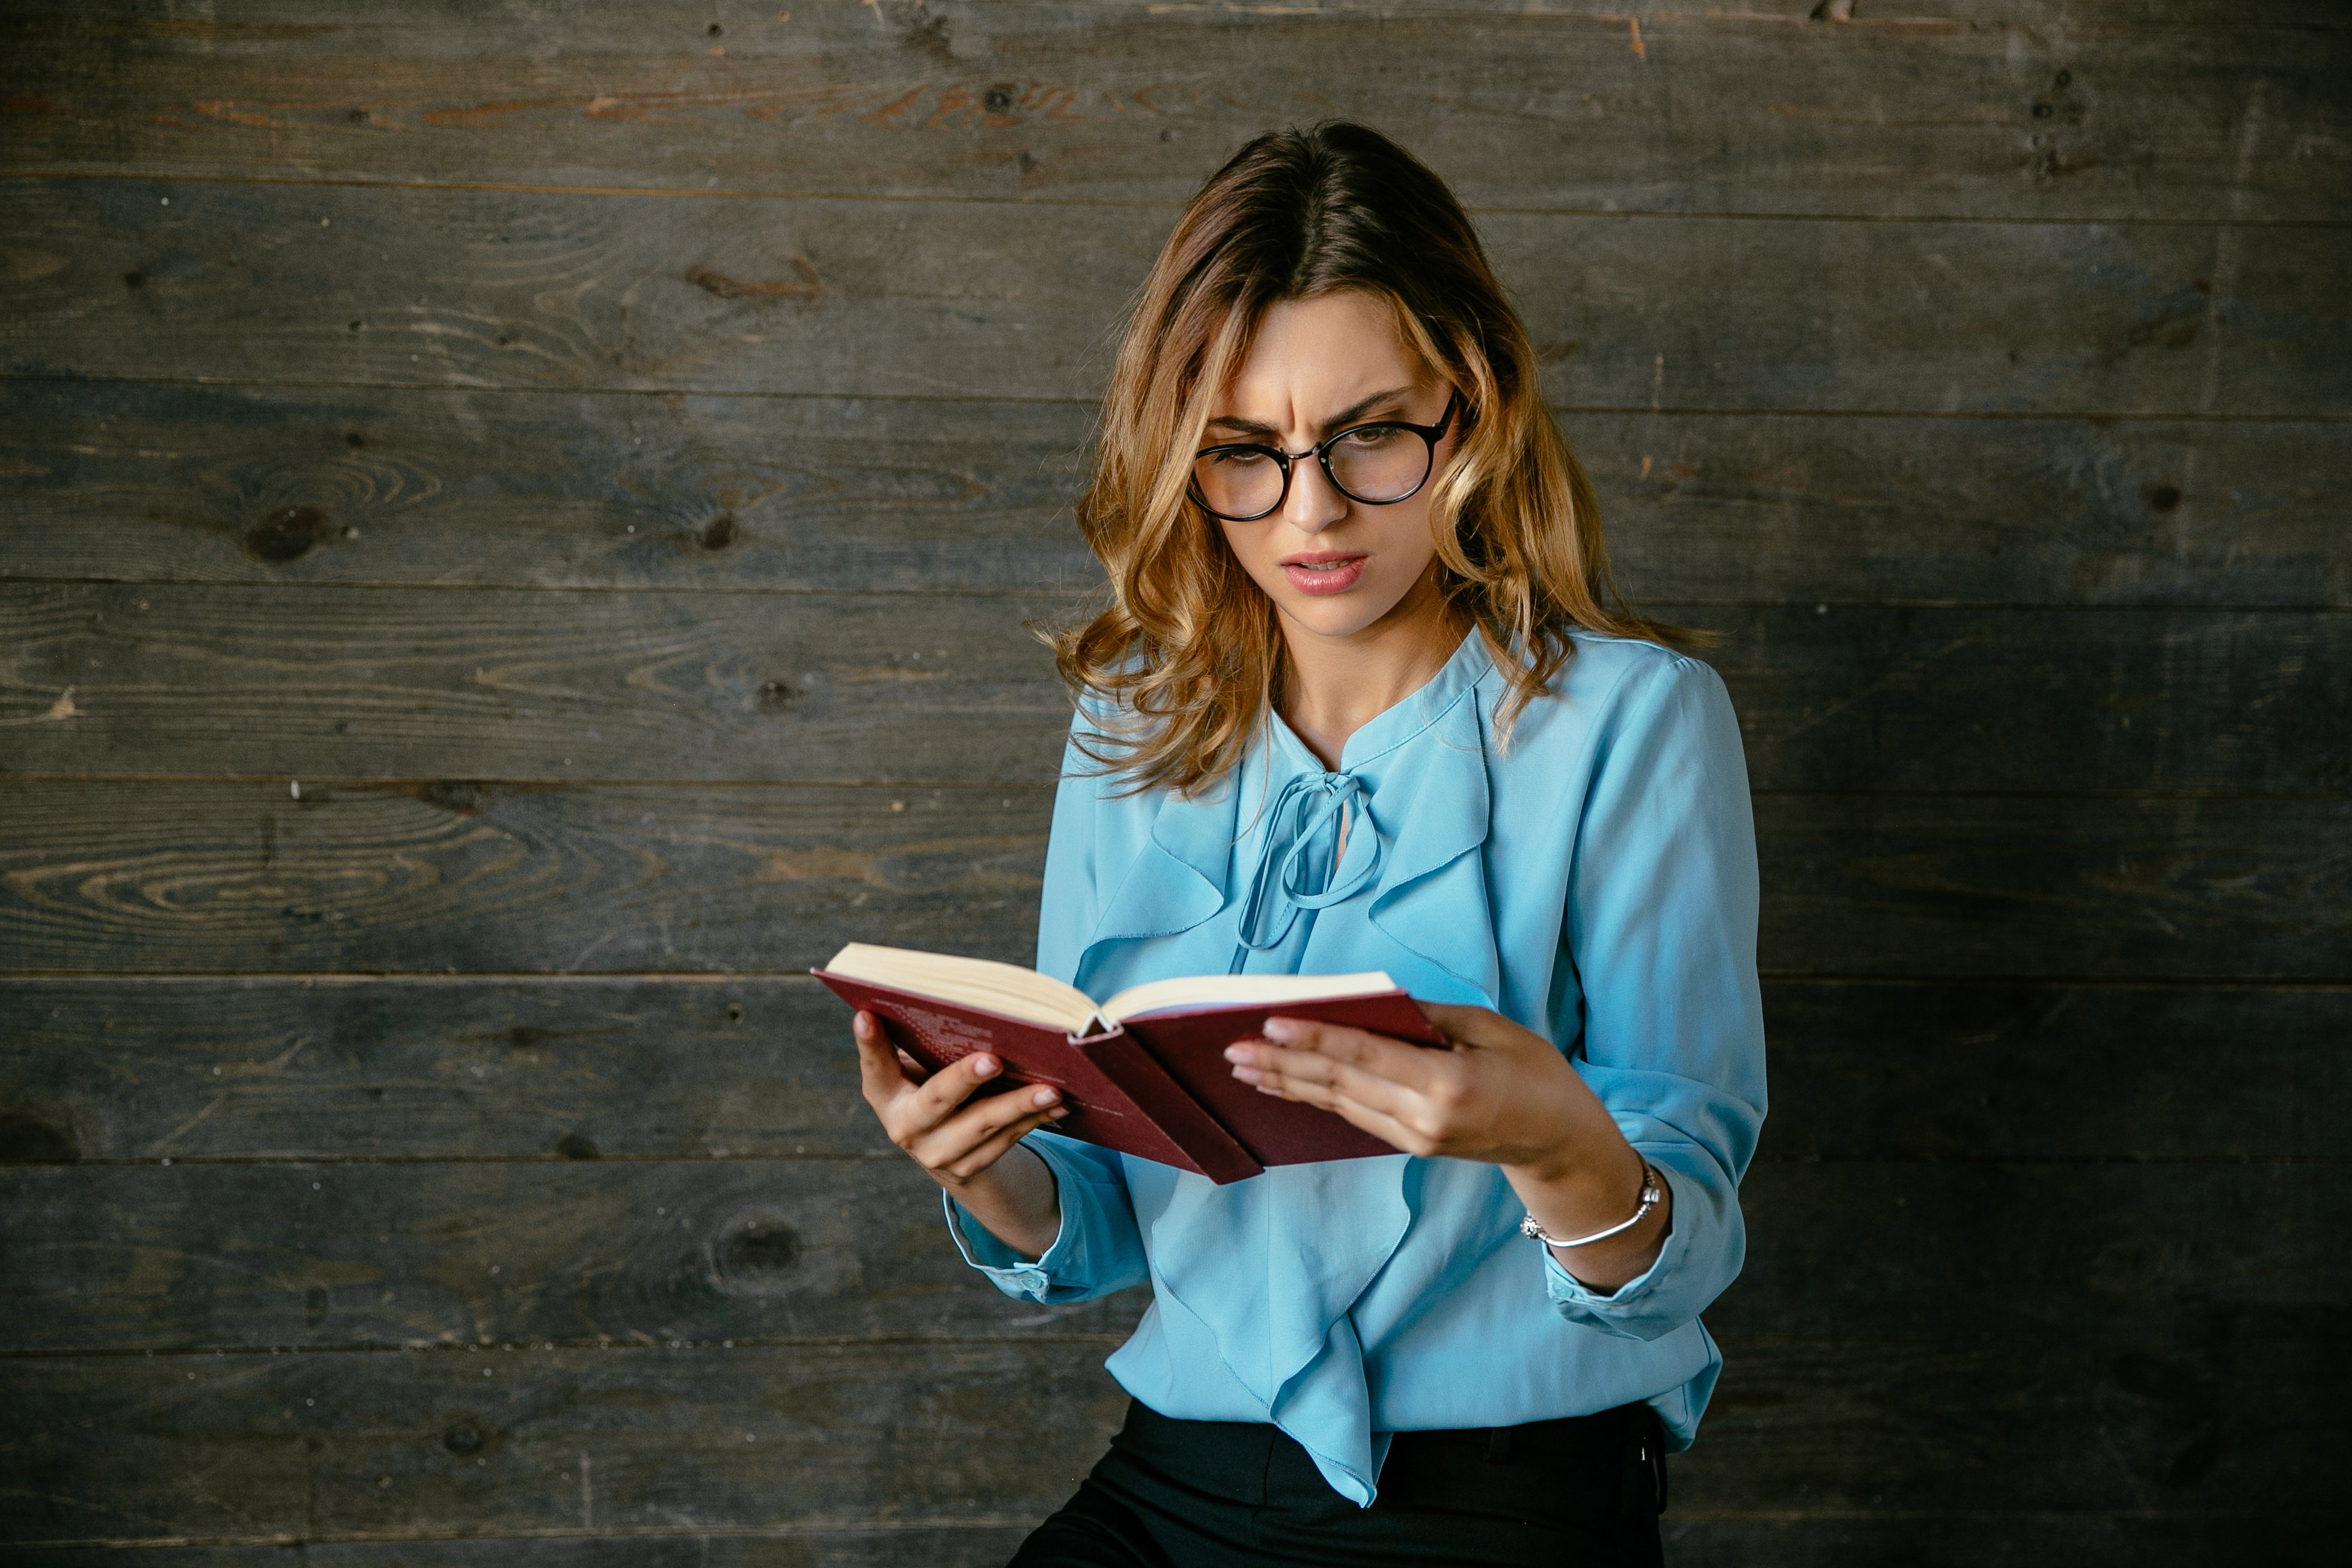 Attractive business woman looks confused while reading a book. Frowning her face in misunderstandment. Dressed in blouse, in eyeglasses.